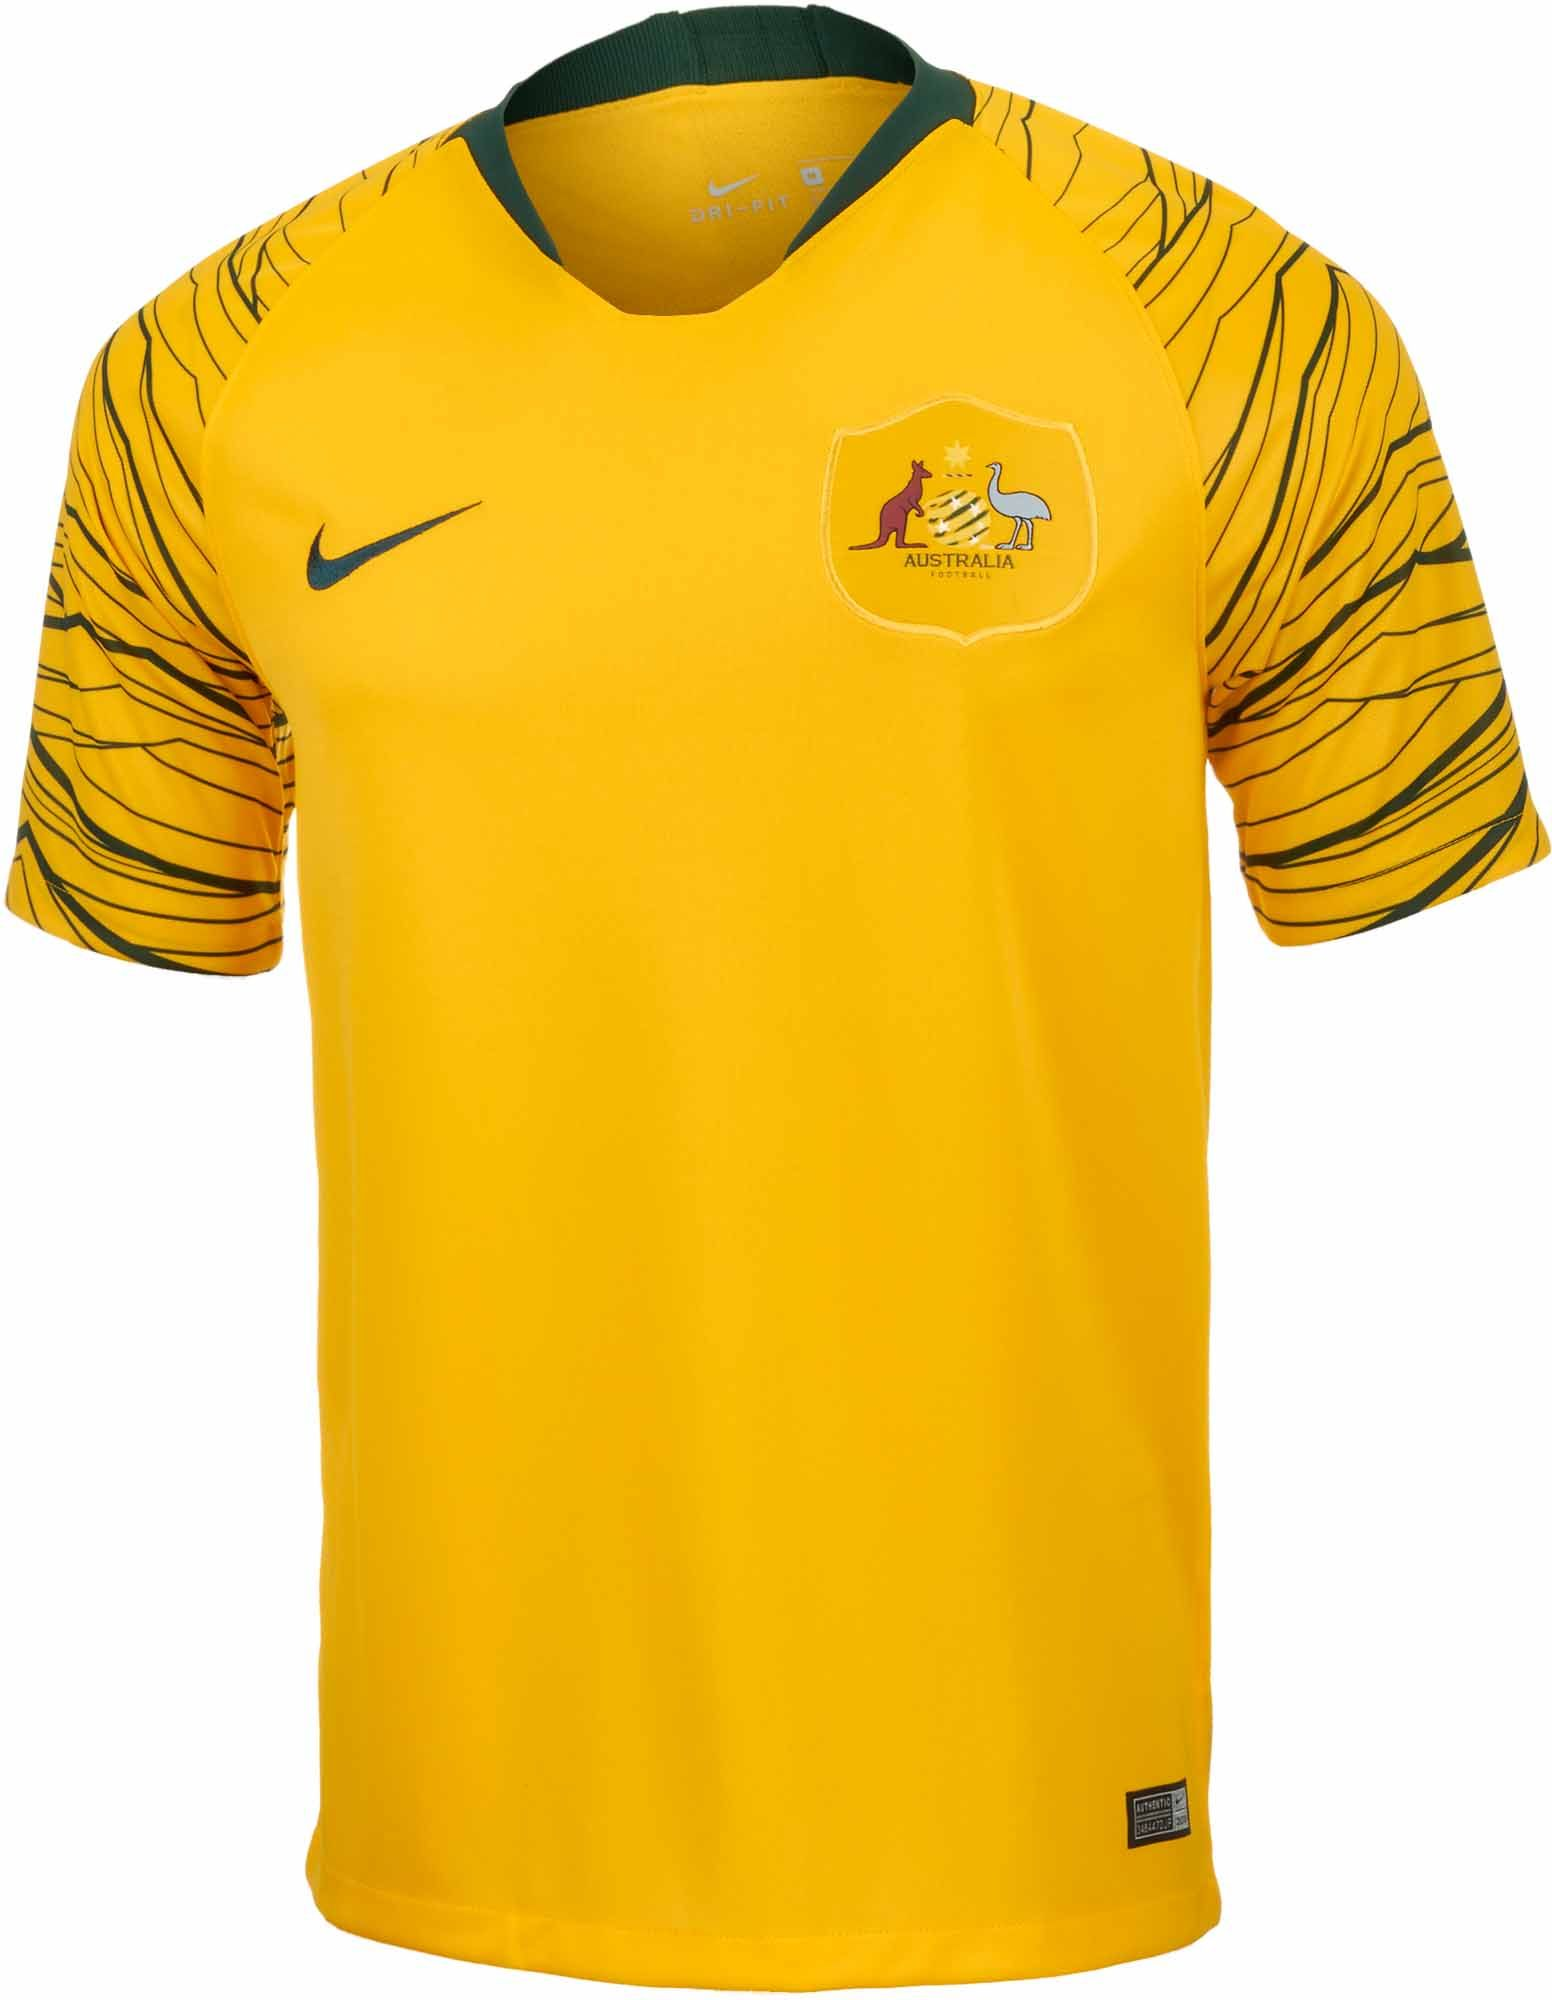 Shop for the 2018 19 Nike Australia Home Jersey at www.soccerpro.com ... 1a9fac751acc7